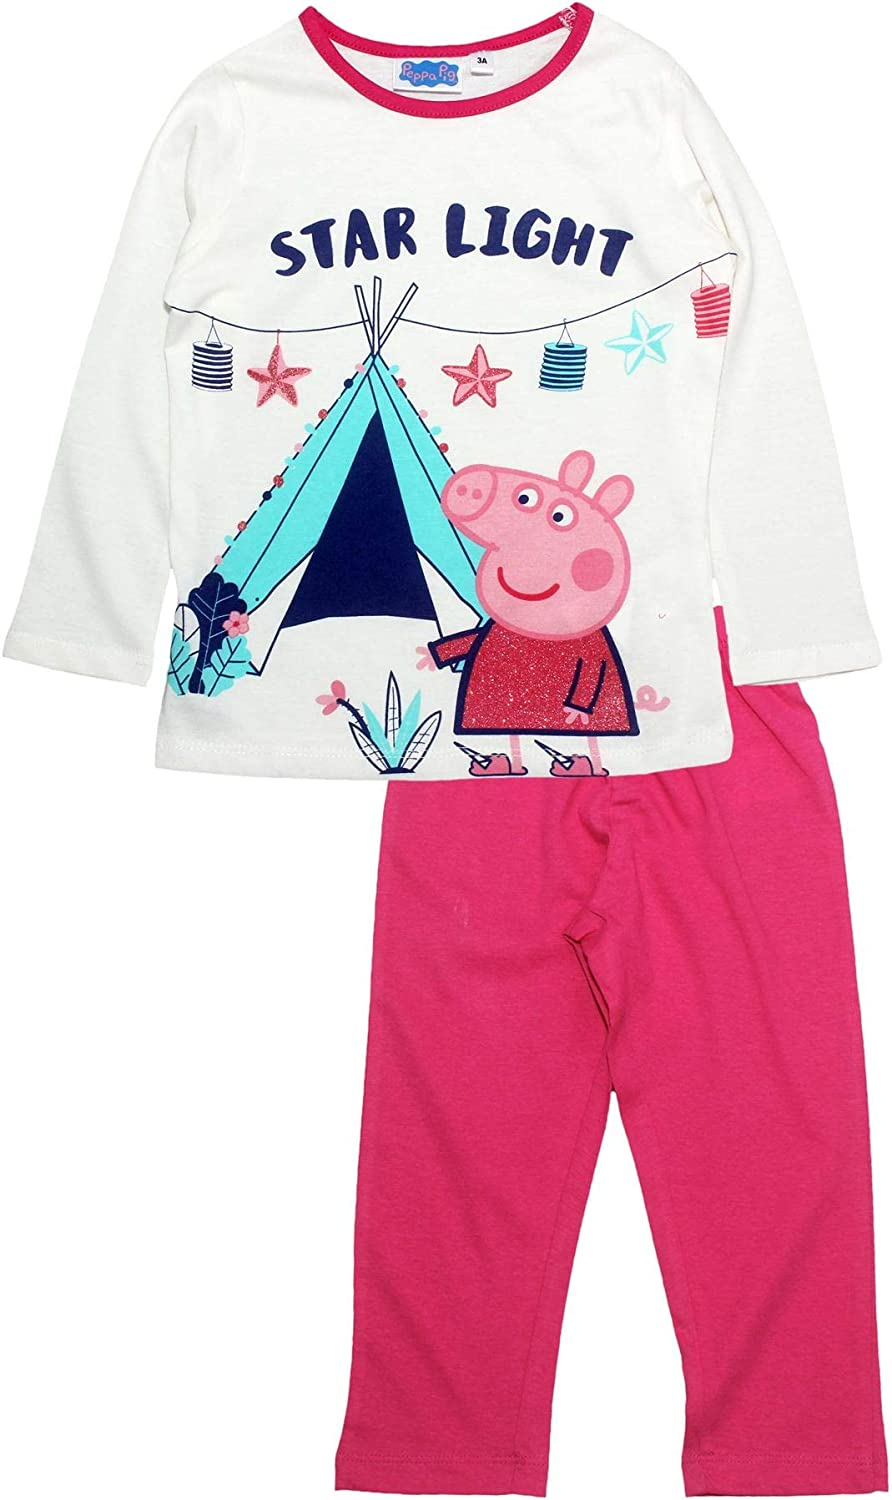 Ages 5-6 Years Peppa Pig Girl/'s Peppa and George Pants Set New Outfit